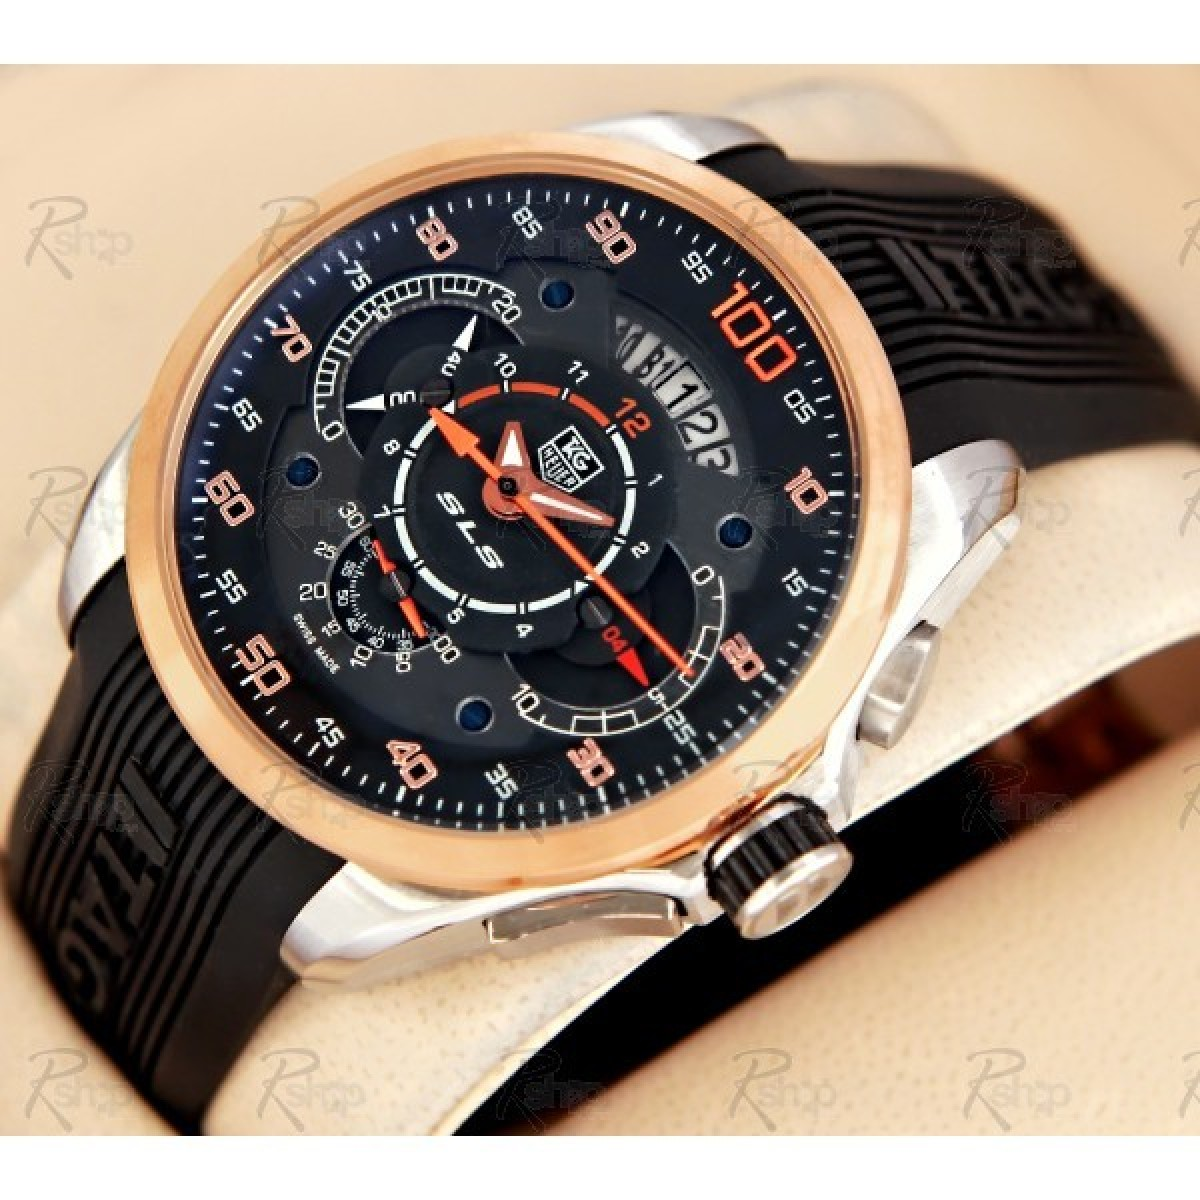 relogio tag heuer mercedes benz slr original « one more soul